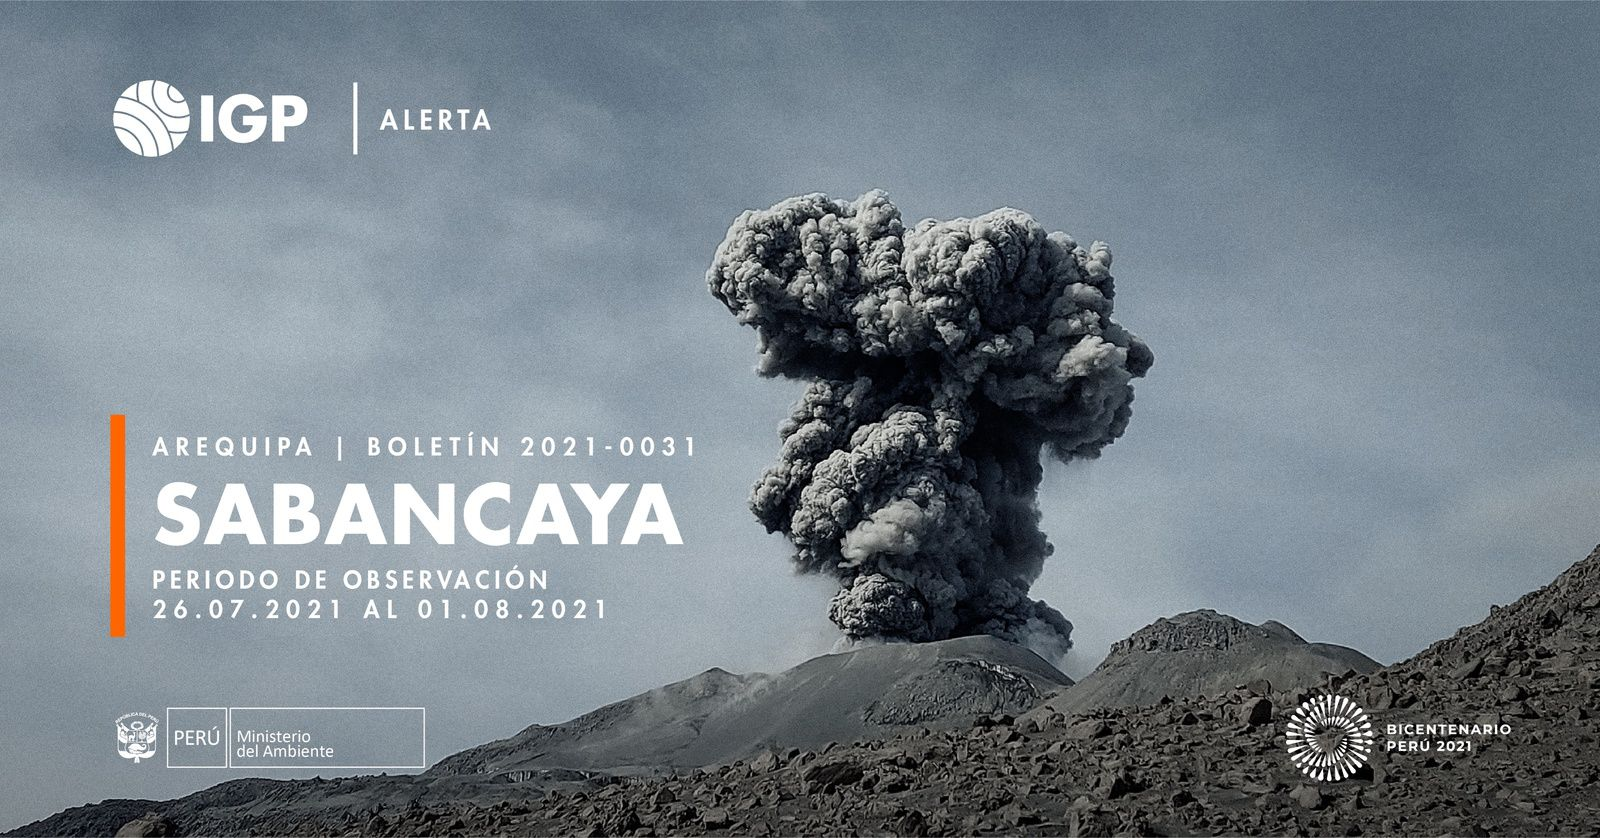 Sabancaya - activity report from July 26 to August 1, 2021 - Doc. I.G. Peru